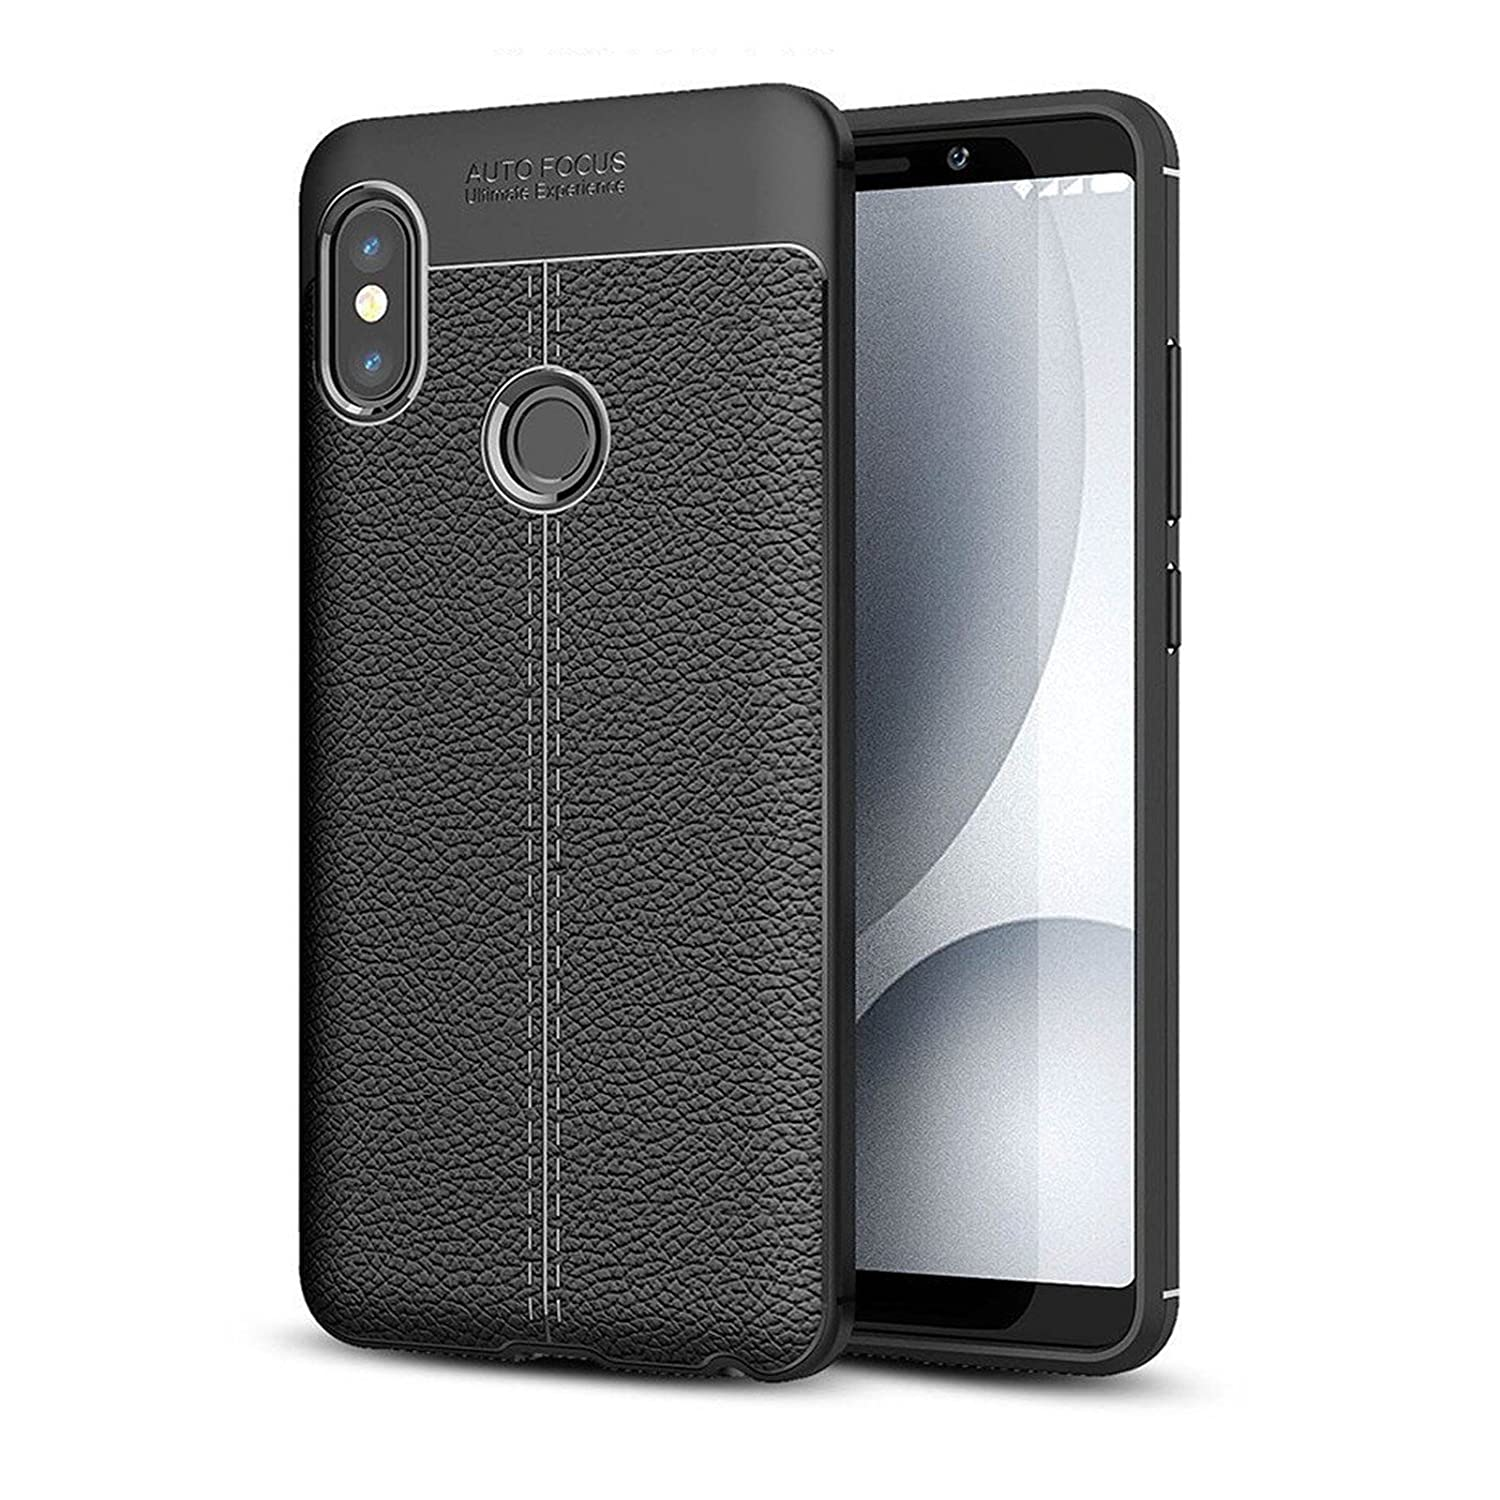 Pokrywa Xiaomi redmi Uwagi 5 Pro Digital Bay okładka Case [Flexible Back Cover] Retro Case [TPU] Comodo wstrząsoodporny Miękkie Slip Case Cienki czarny dla Xiaomi redmi 5 Notatki Pro